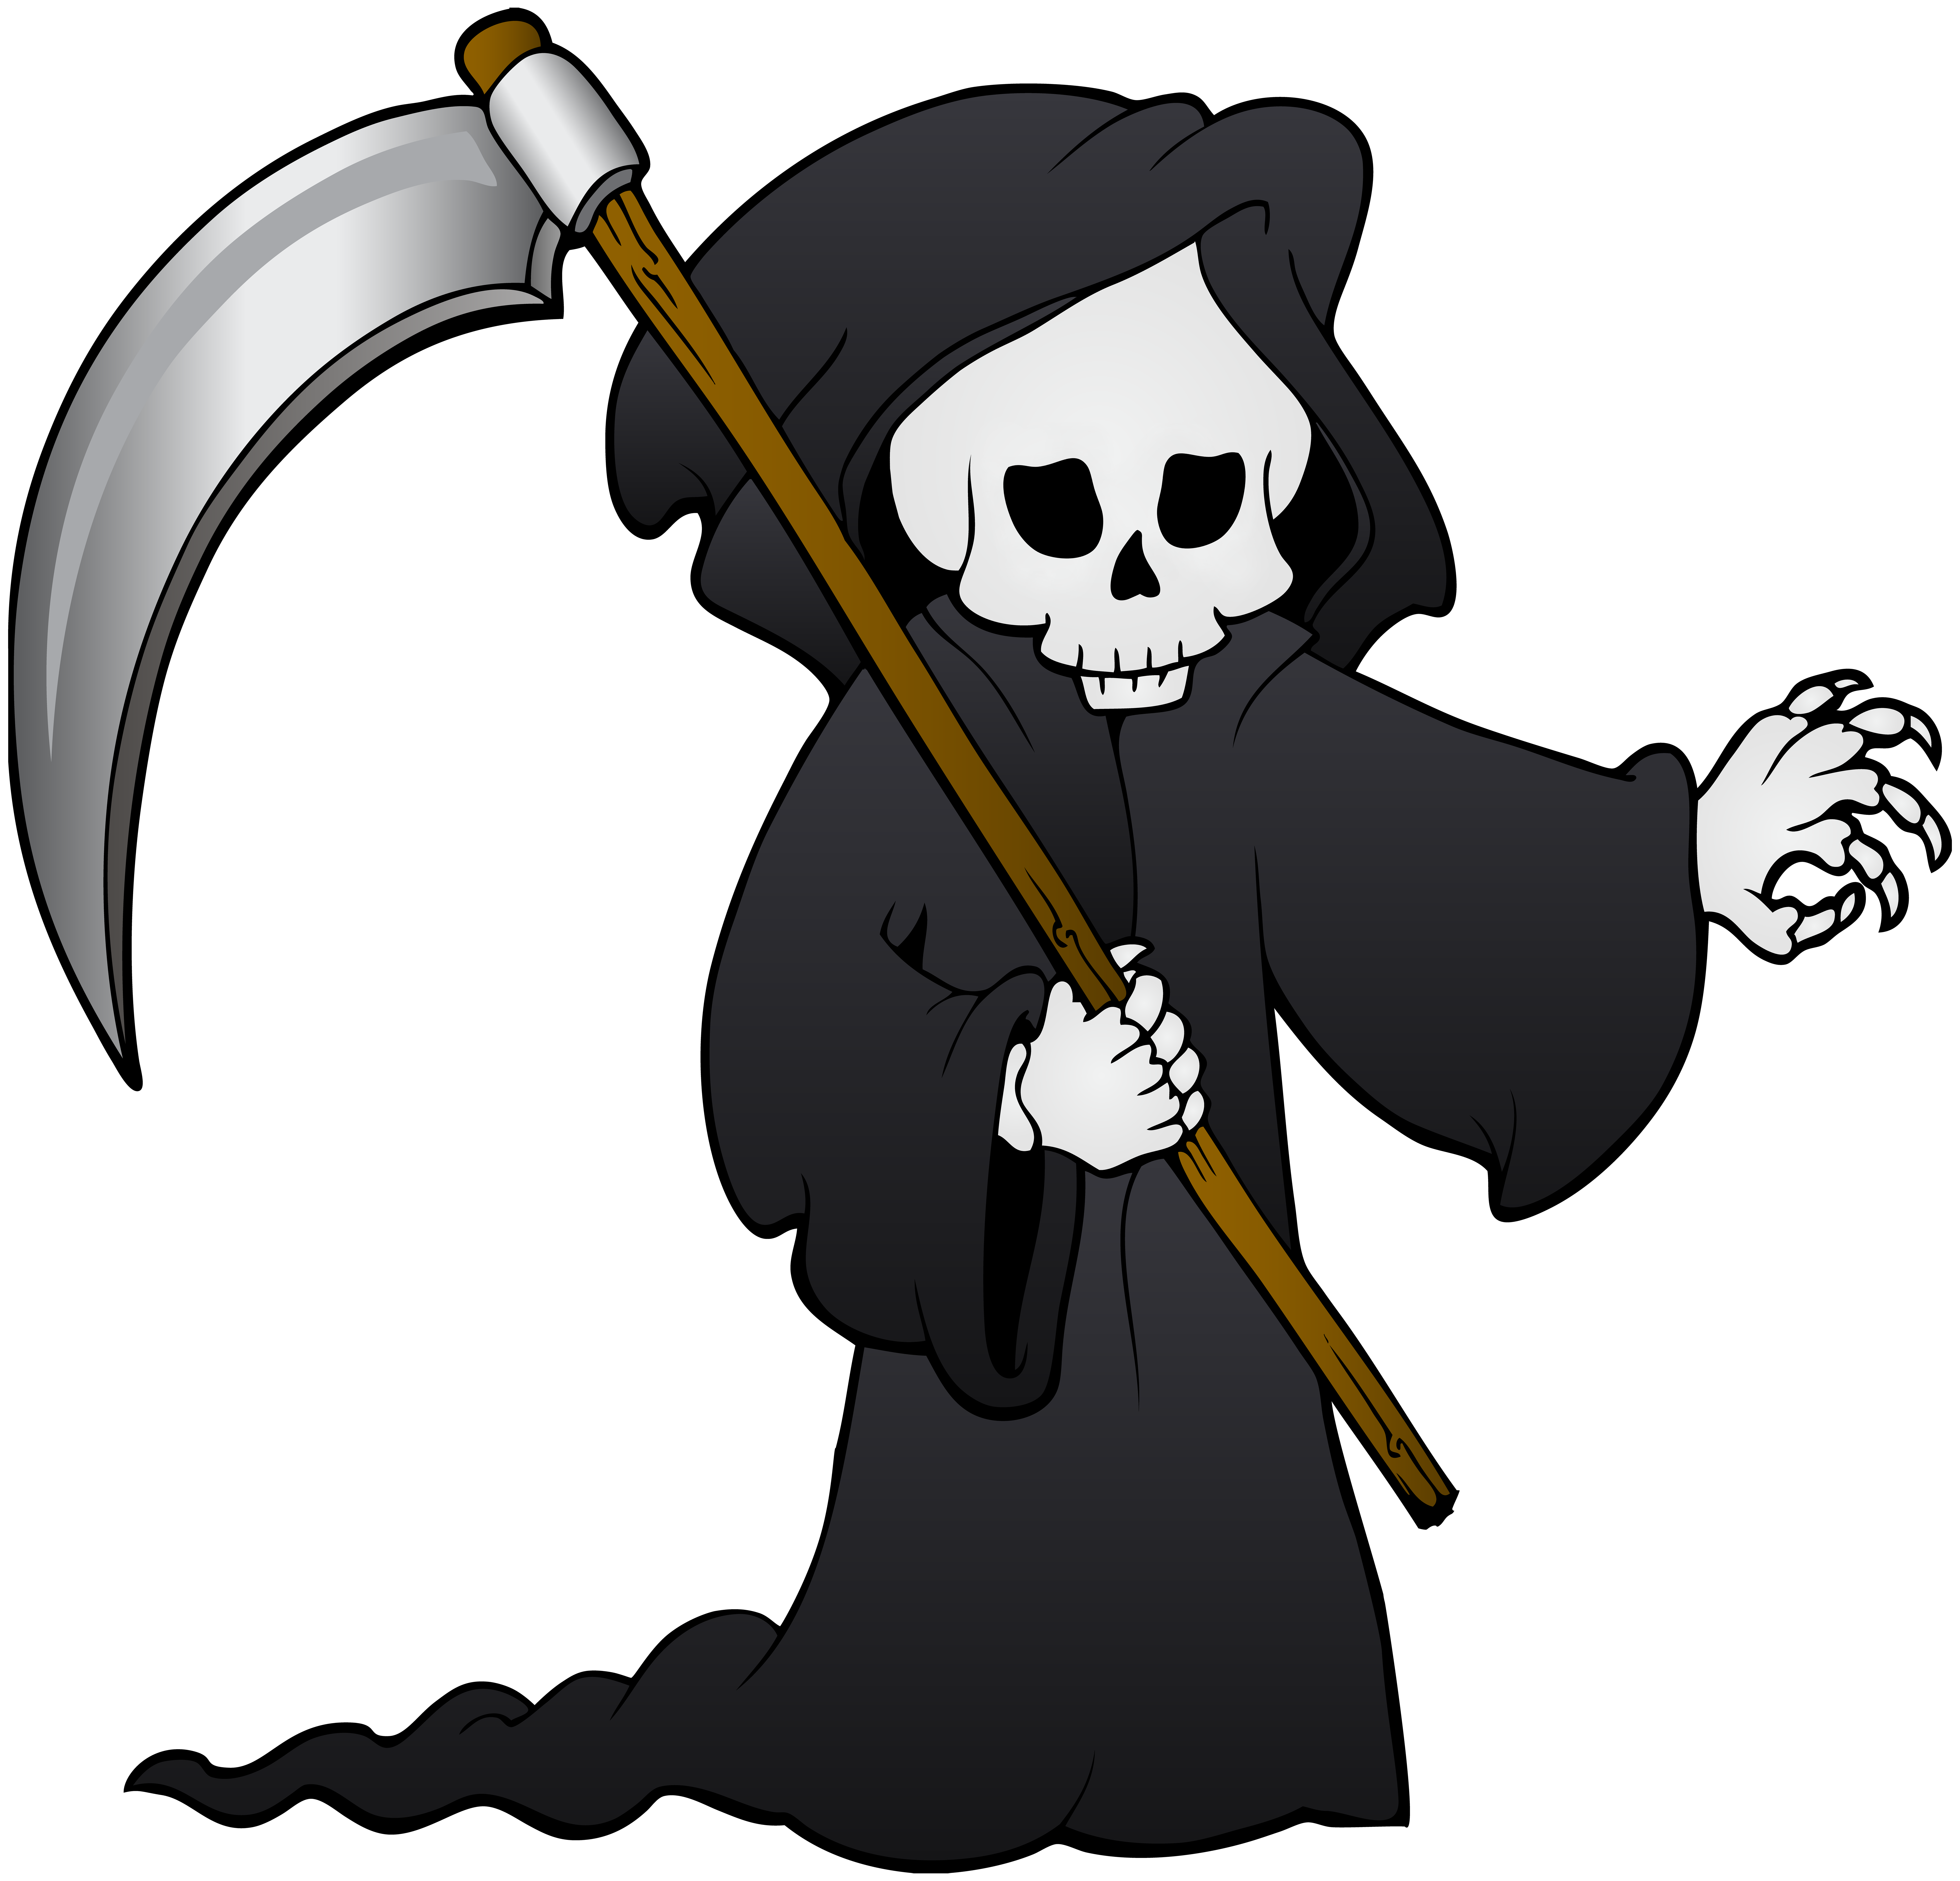 banner free stock Grim reaper clipart. Png clip art image.